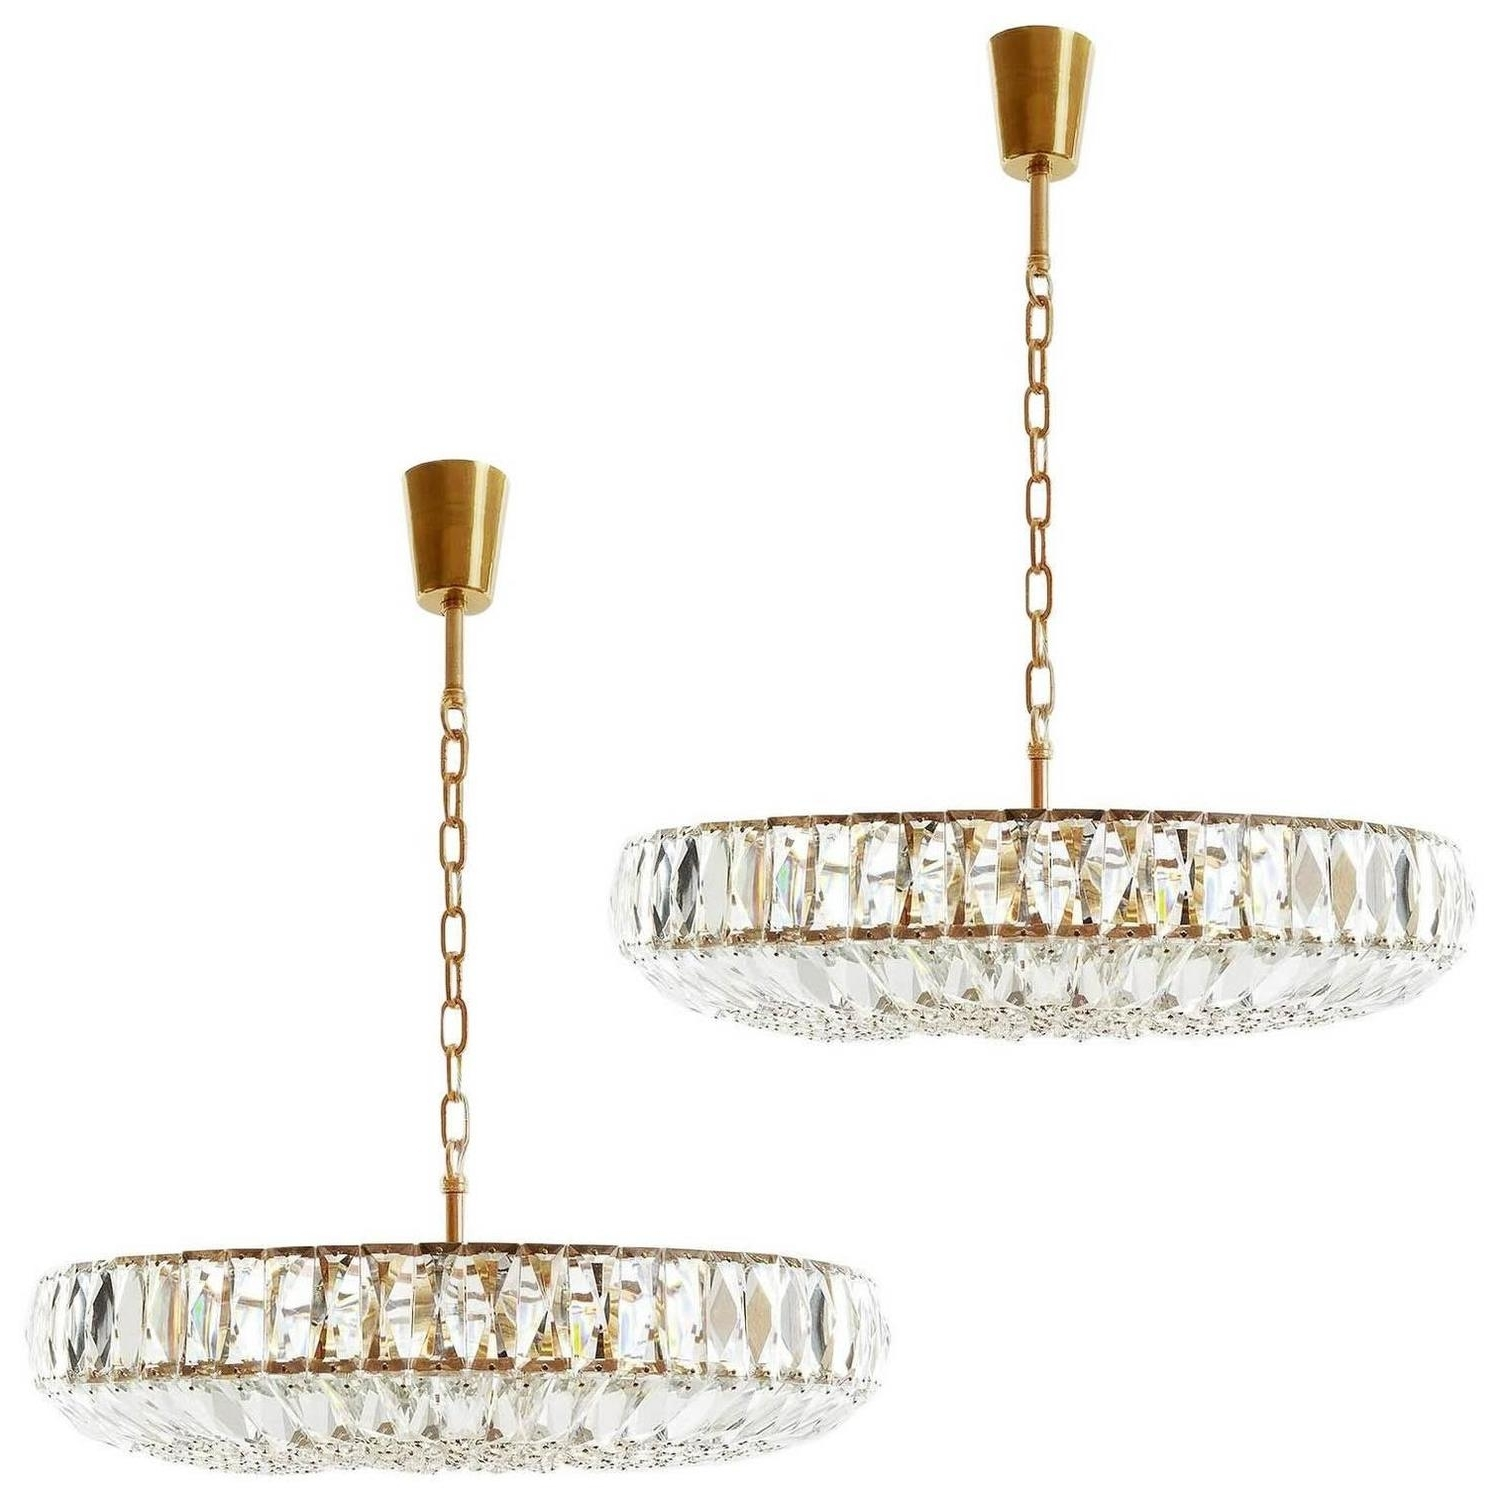 Gold Modern Chandelier With Regard To Most Up To Date Pair Of Bakalowits Style Chandeliers, Gold Brass Crystal, Austria (View 12 of 20)